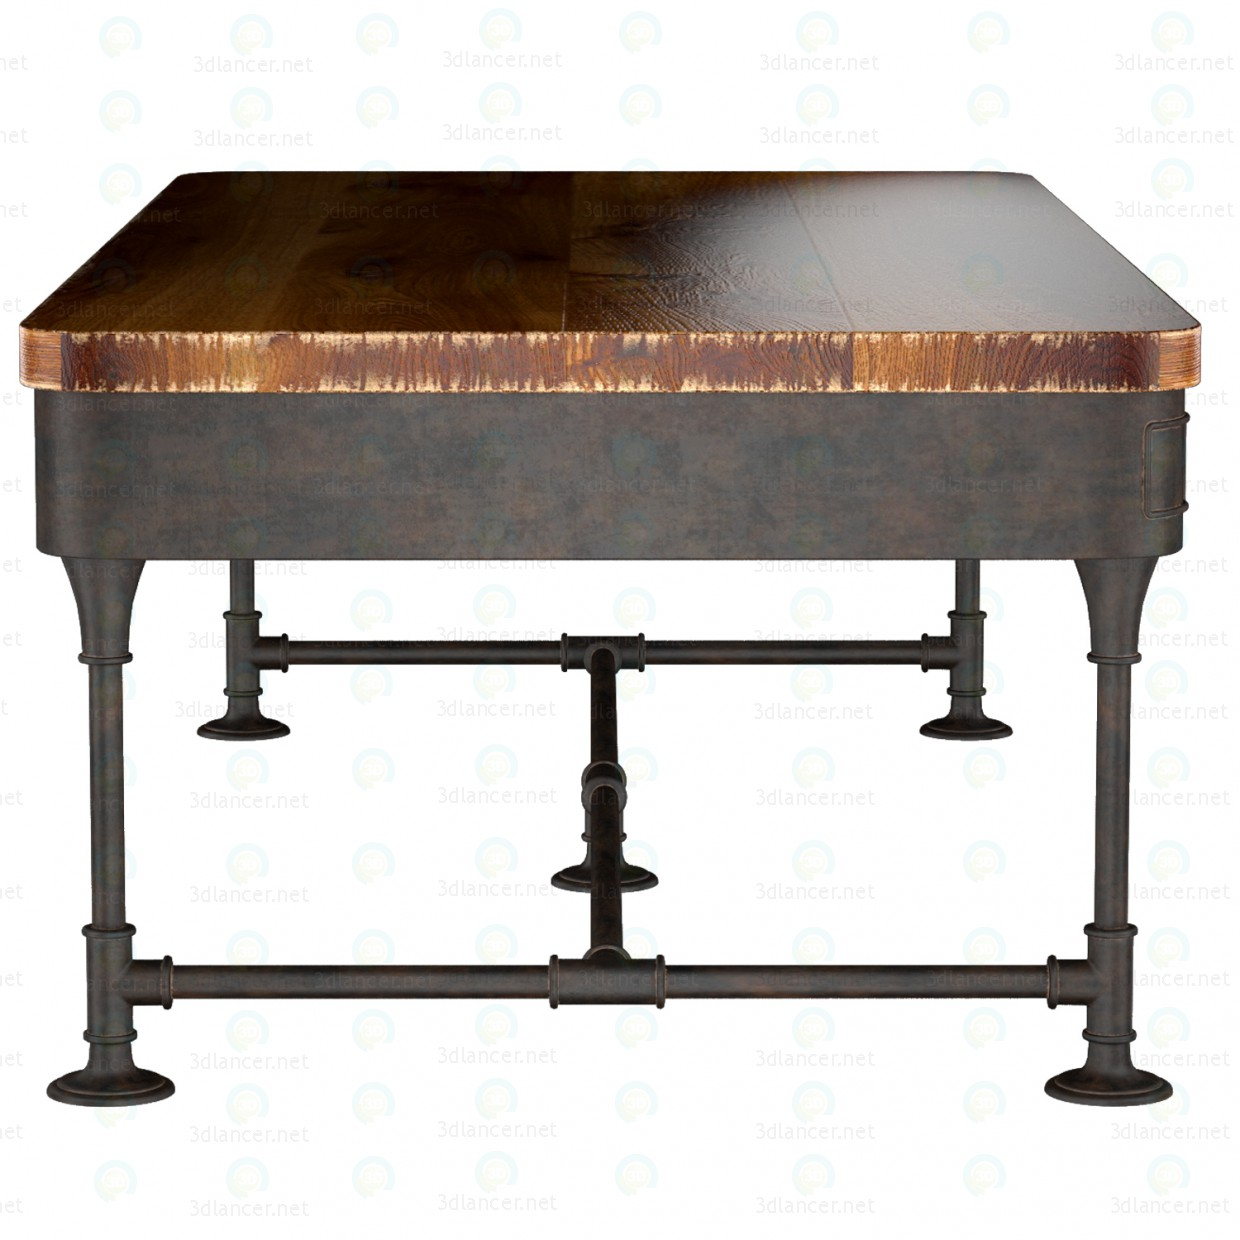 3d The Post Rustic Iron 2-Drawer Mango Wood Coffee Table model buy - render